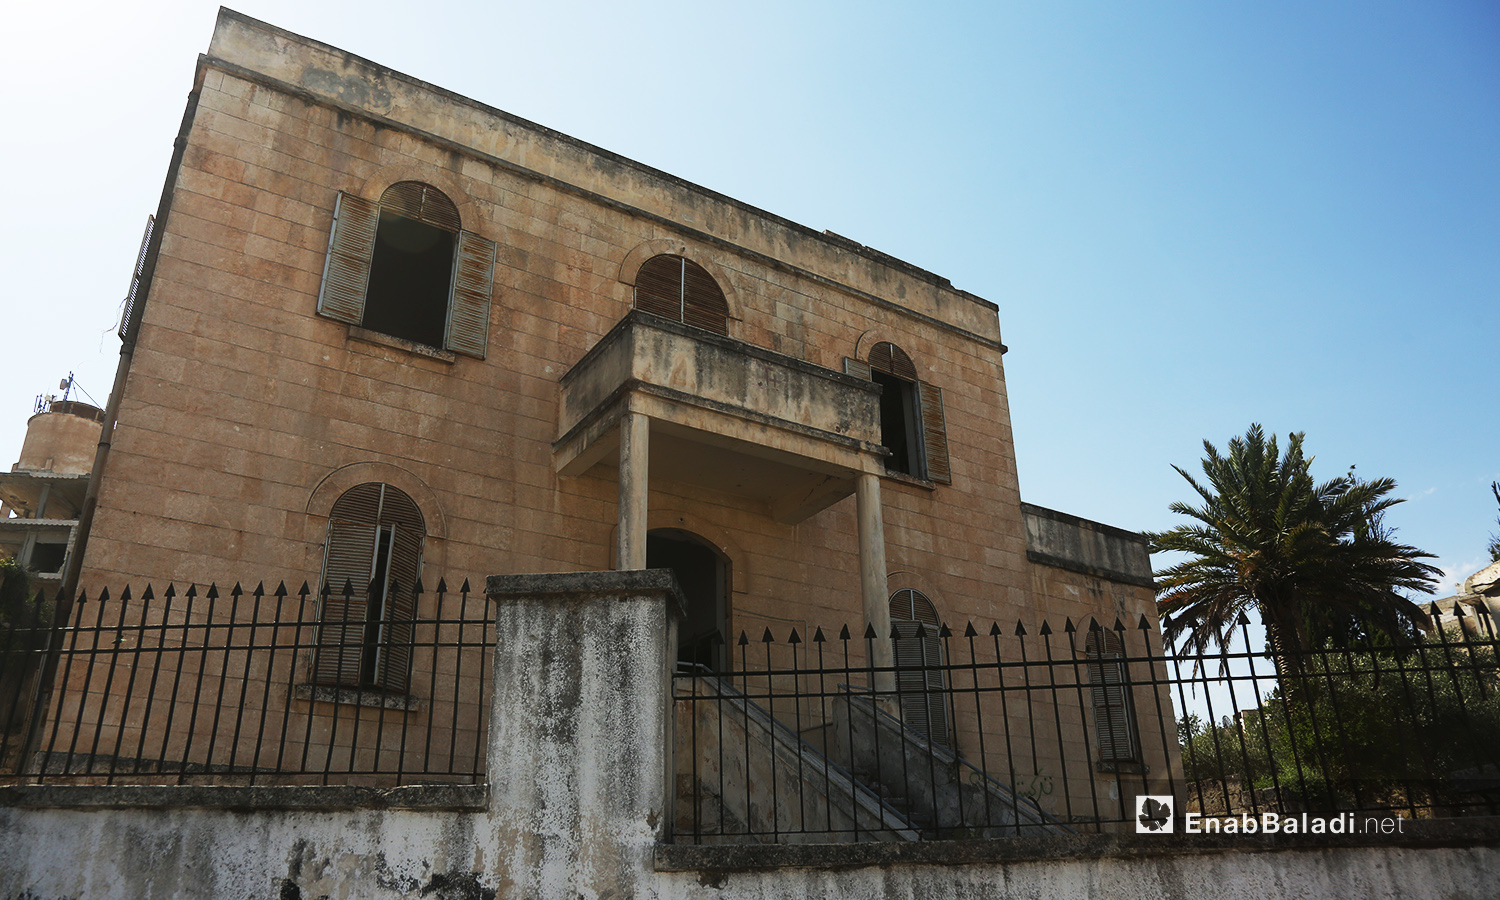 """""""Mar Georges"""" Church for the Greek Orthodox in Jisr al-Shughur city in the Southern Idlib countryside still has its structure despite being bombed during the war years in Syria – July 2020 (Enab Baladi)"""